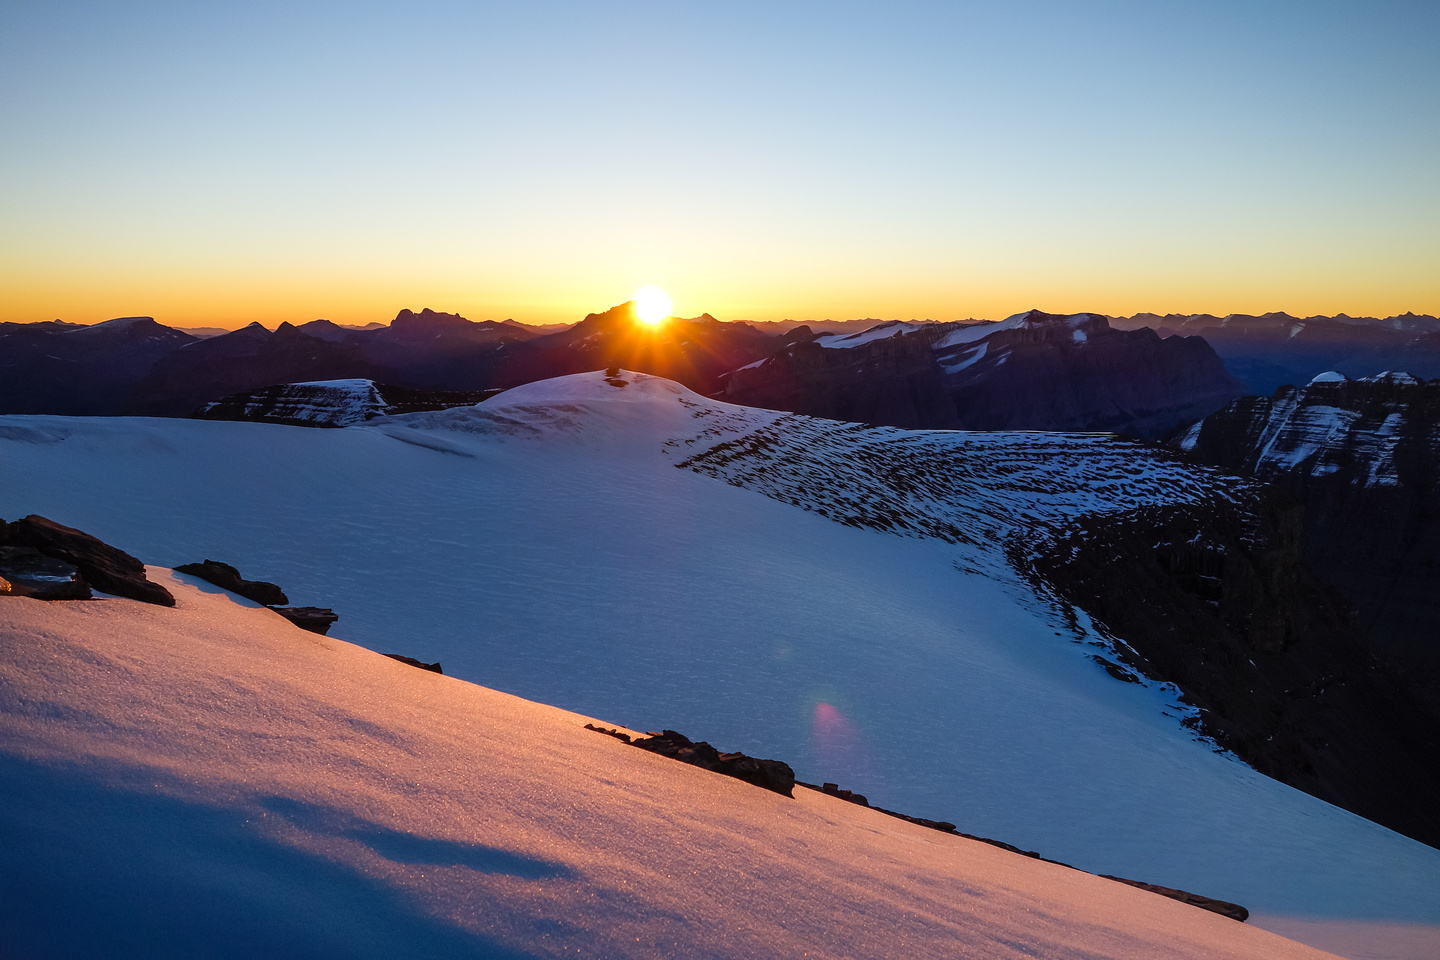 Looking back over our bivy site as the sun rises over Mount Cline.